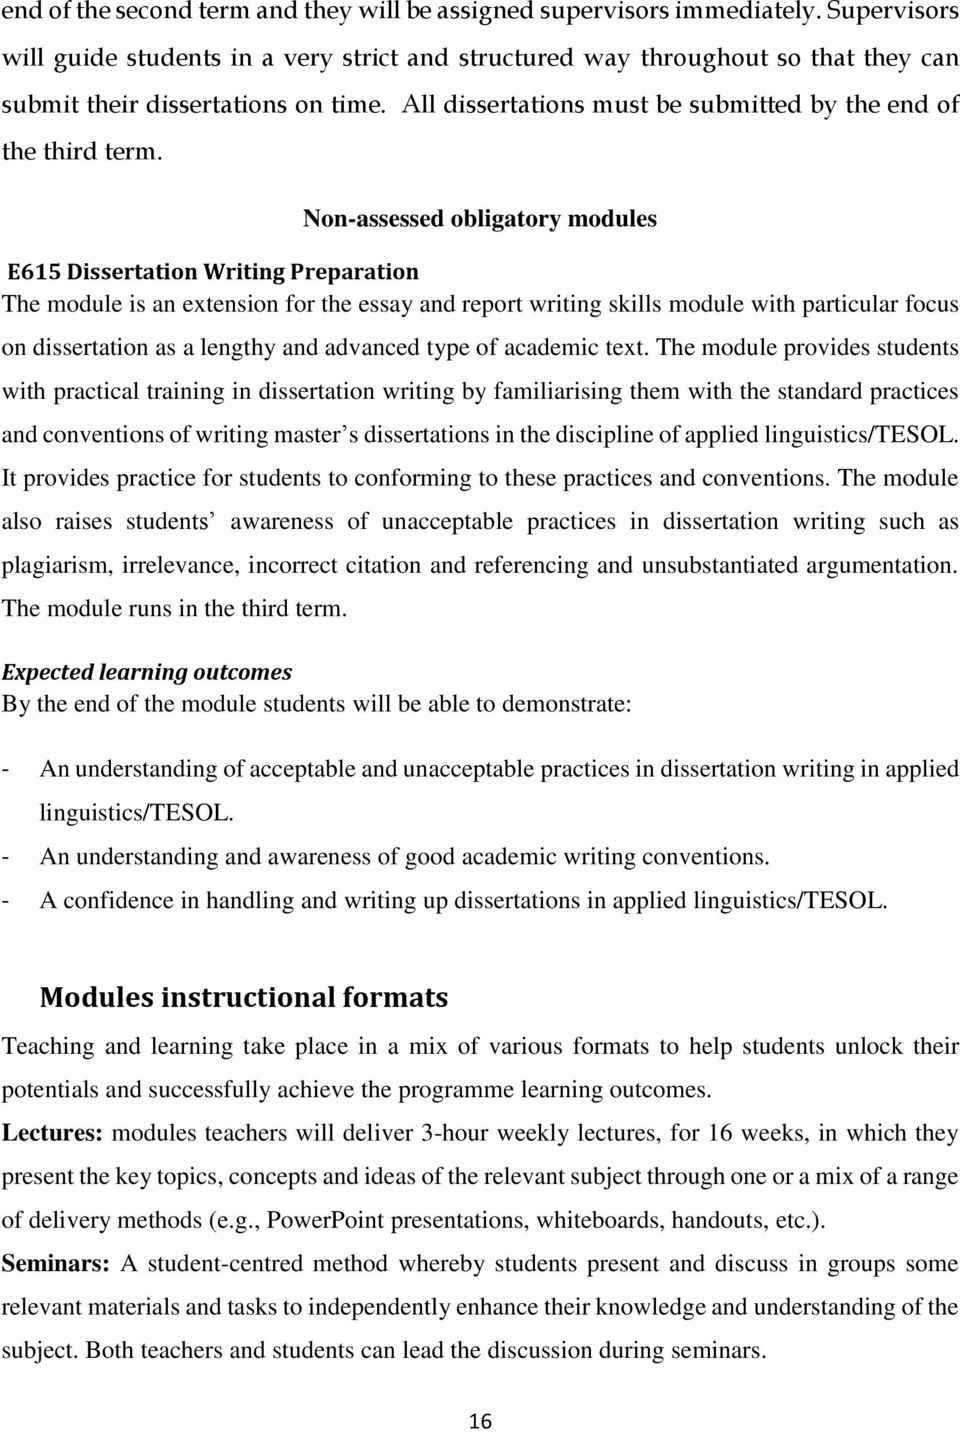 Non-assessed obligatory modules E615 Dissertation Writing Preparation The module is an extension for the essay and report writing skills module with particular focus on dissertation as a lengthy and